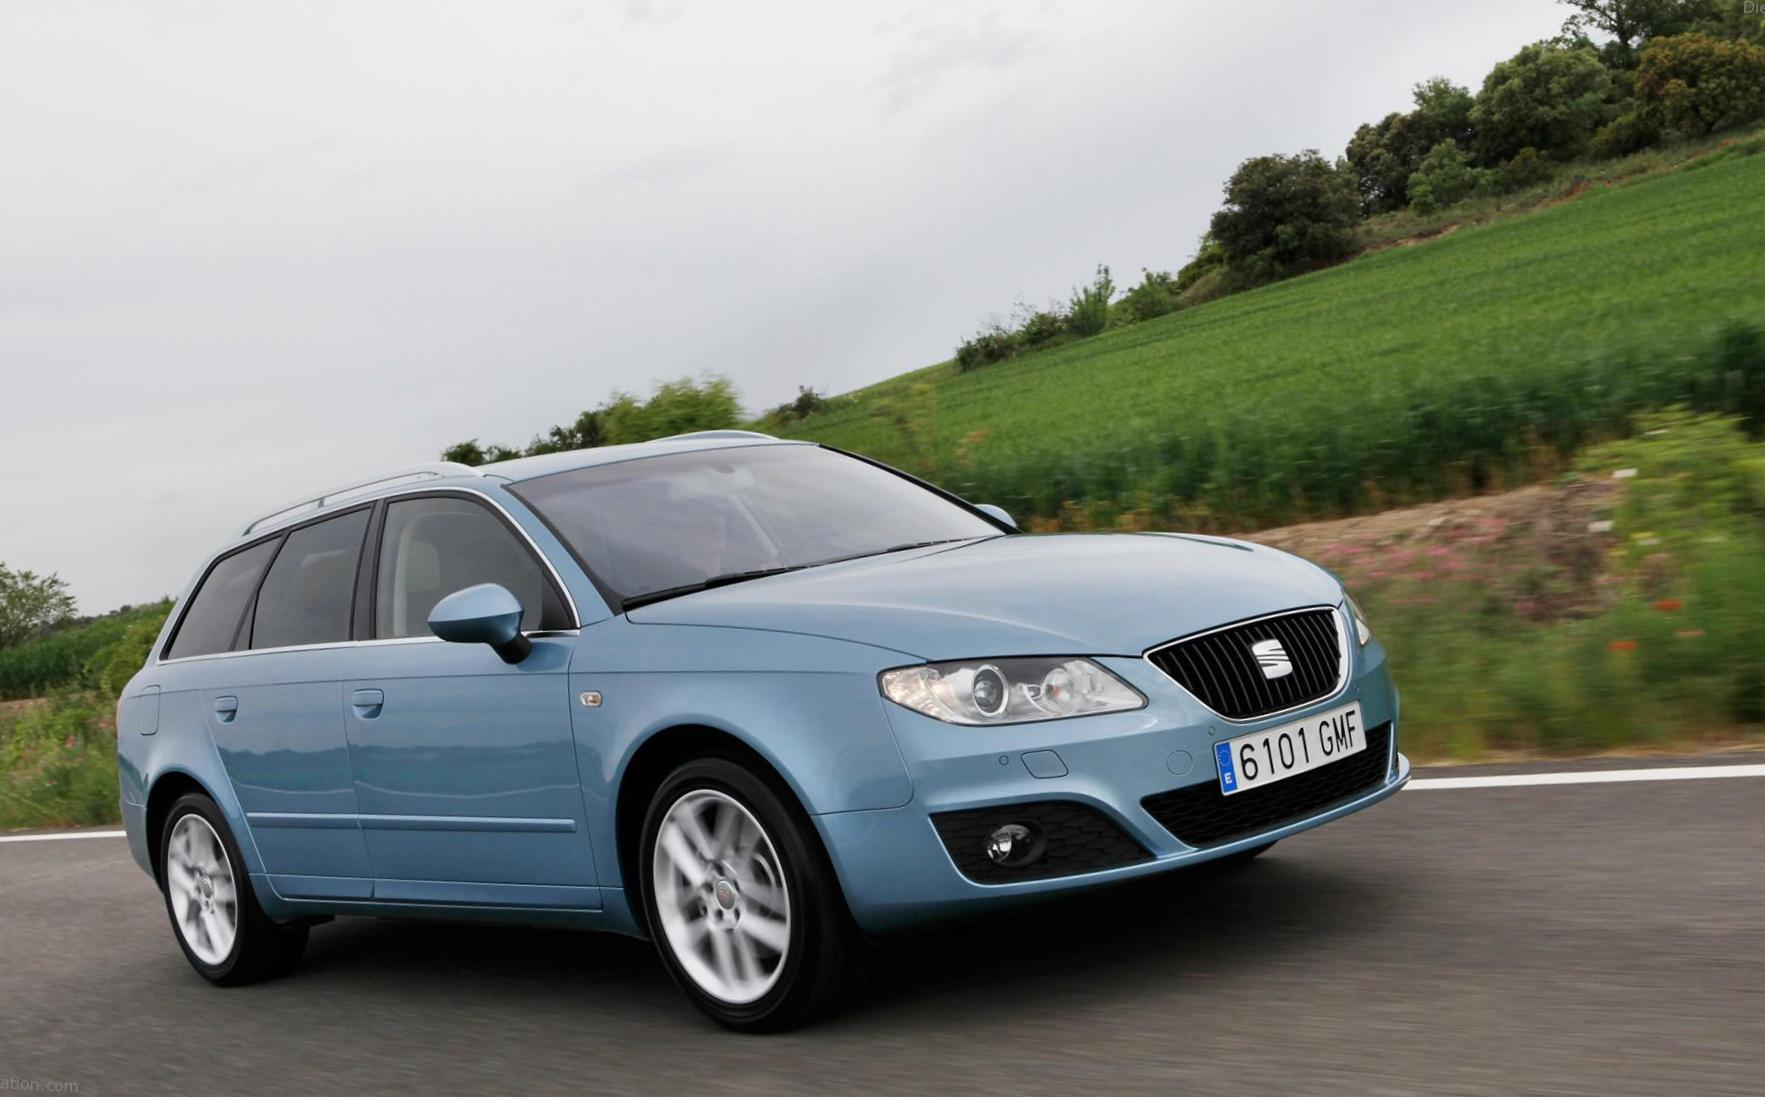 Seat Exeo ST parts hatchback